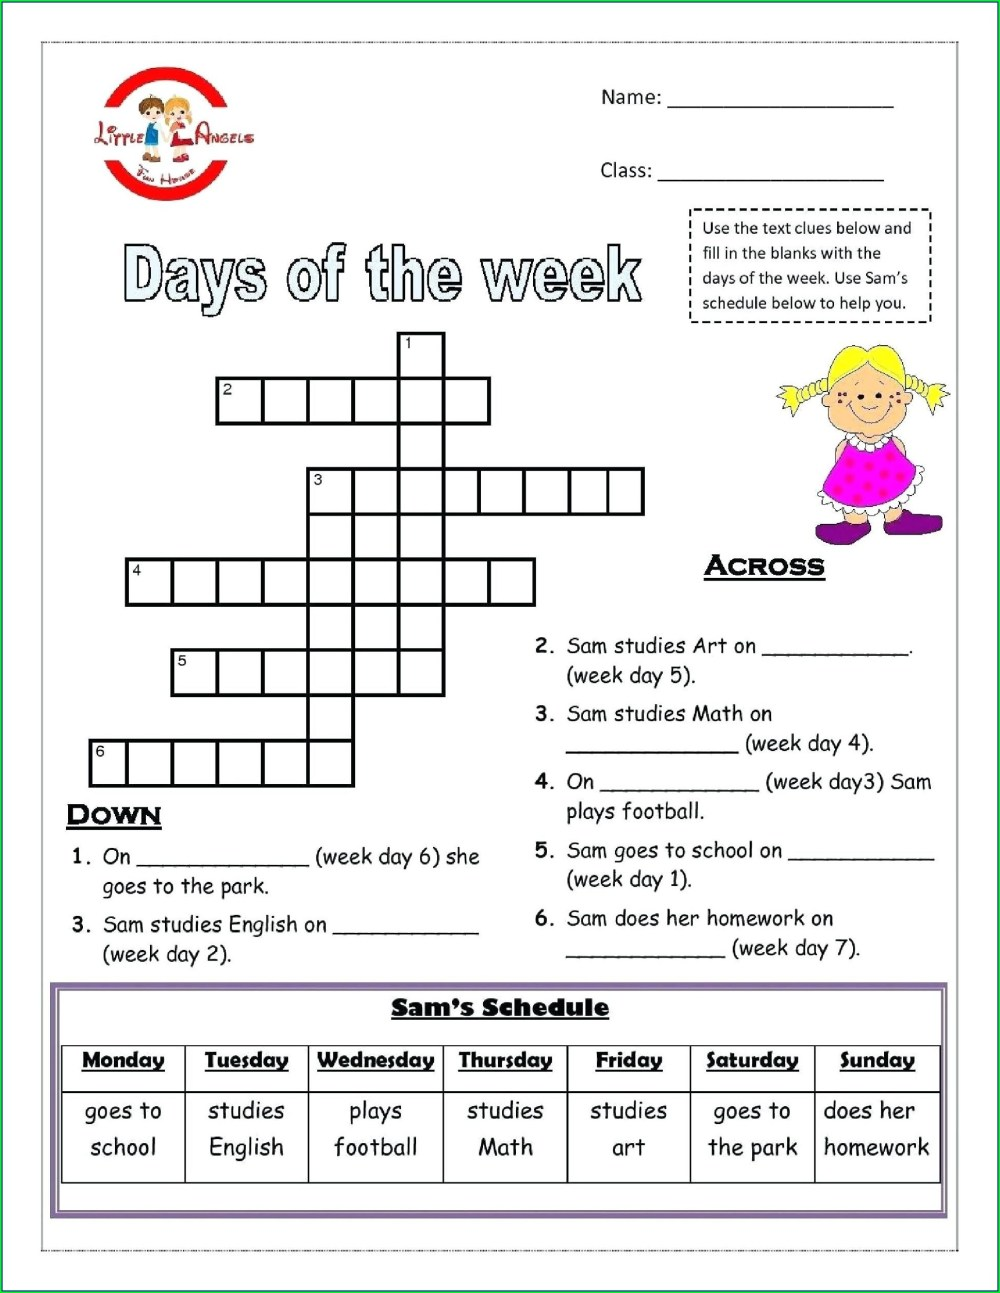 medium resolution of 11th Grade Worksheet Packets Printables   Printable Worksheets and  Activities for Teachers